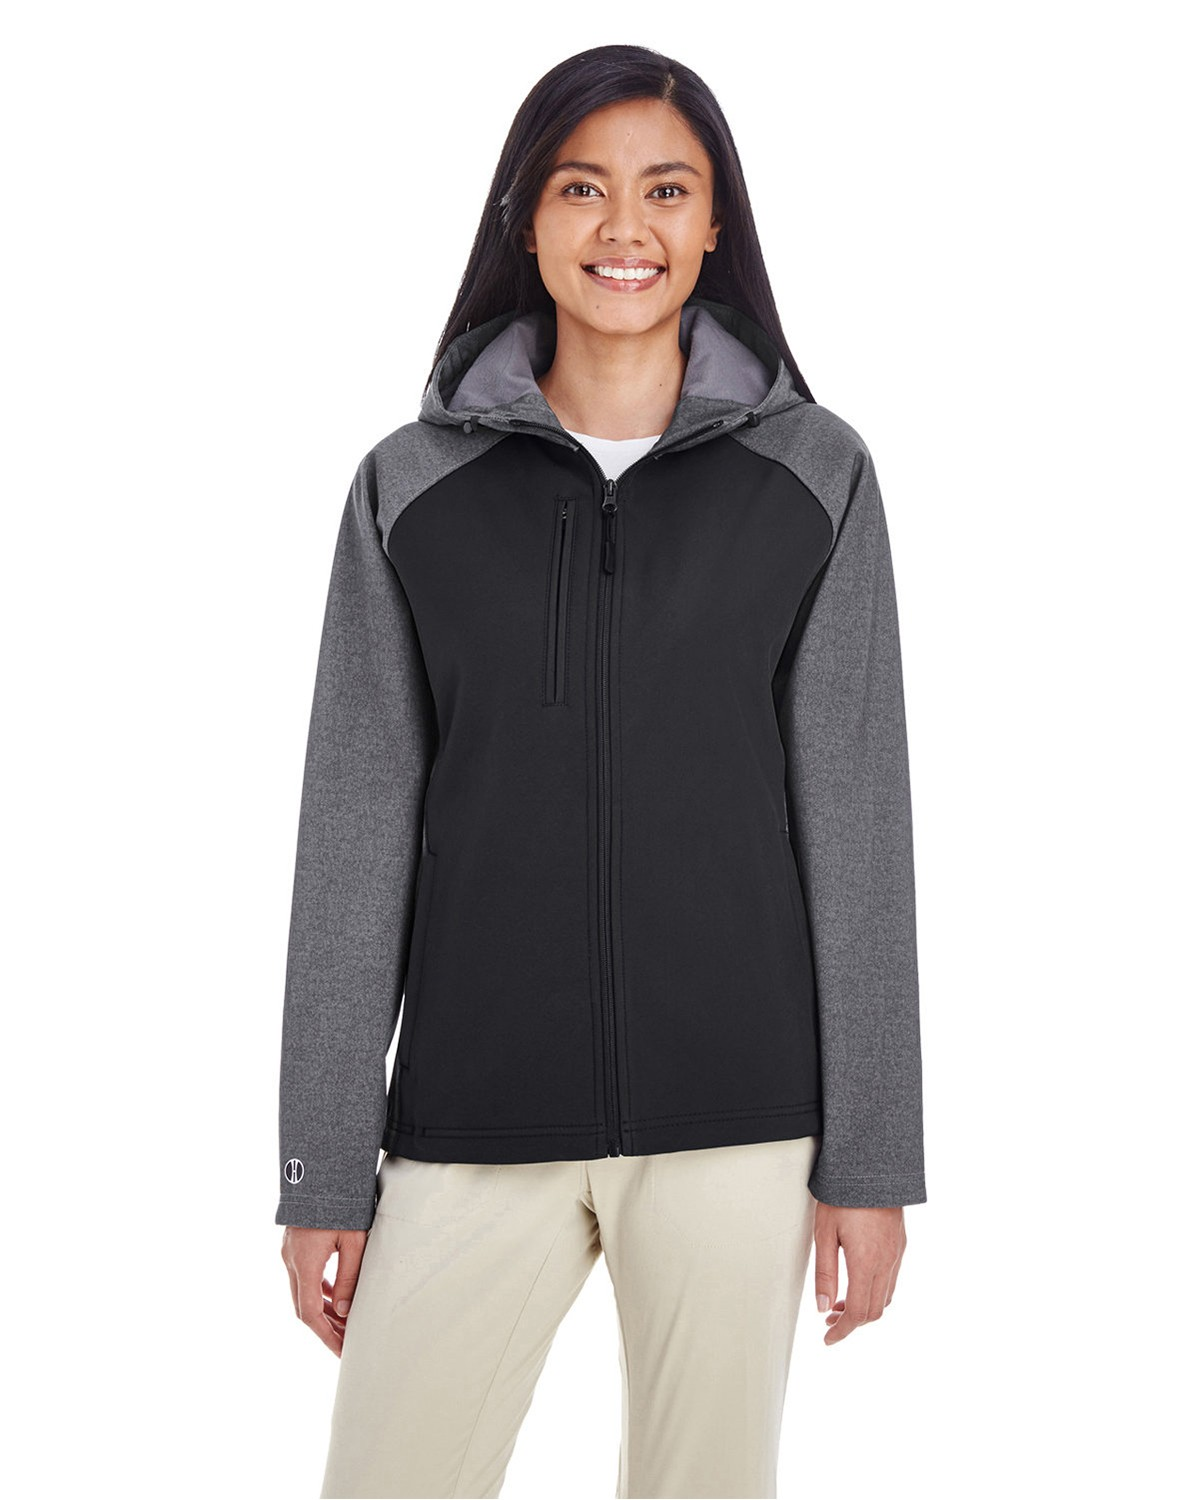 Holloway 229357 Raider Soft Shell Jacket - Carbon Print/Black - S 229357